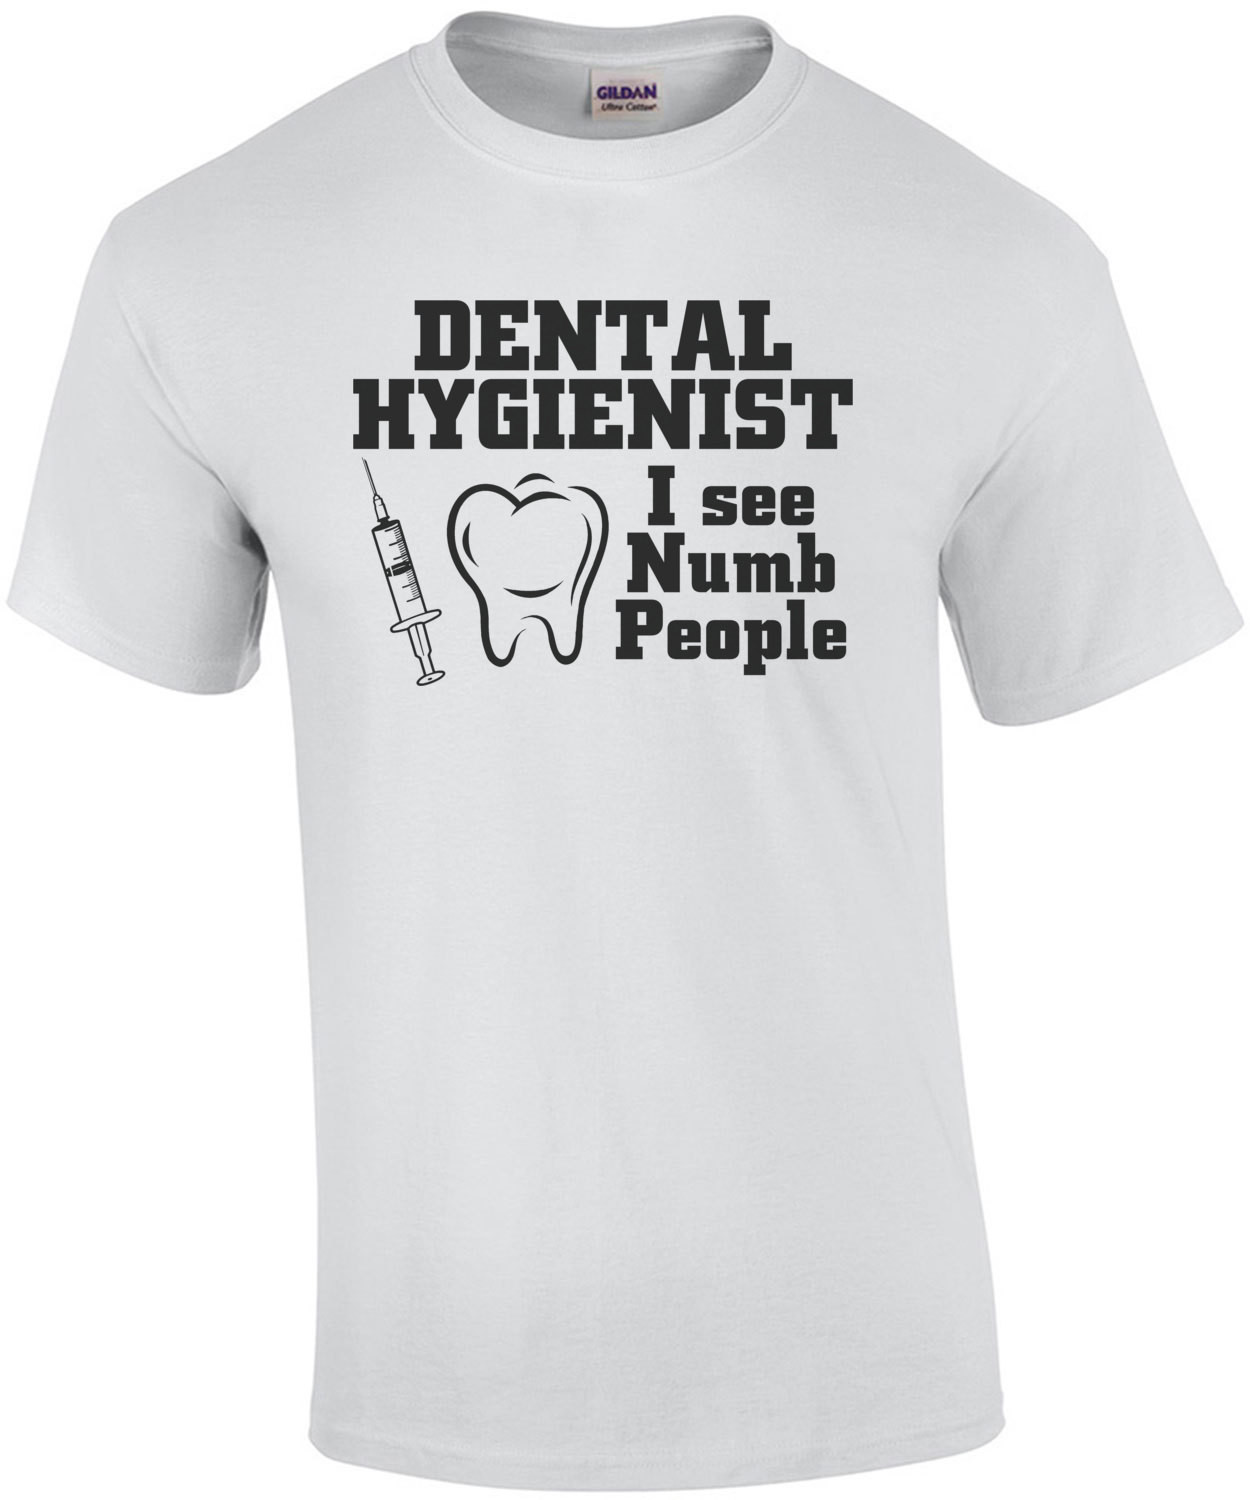 Dental Hygienist I See Numb People T-Shirt